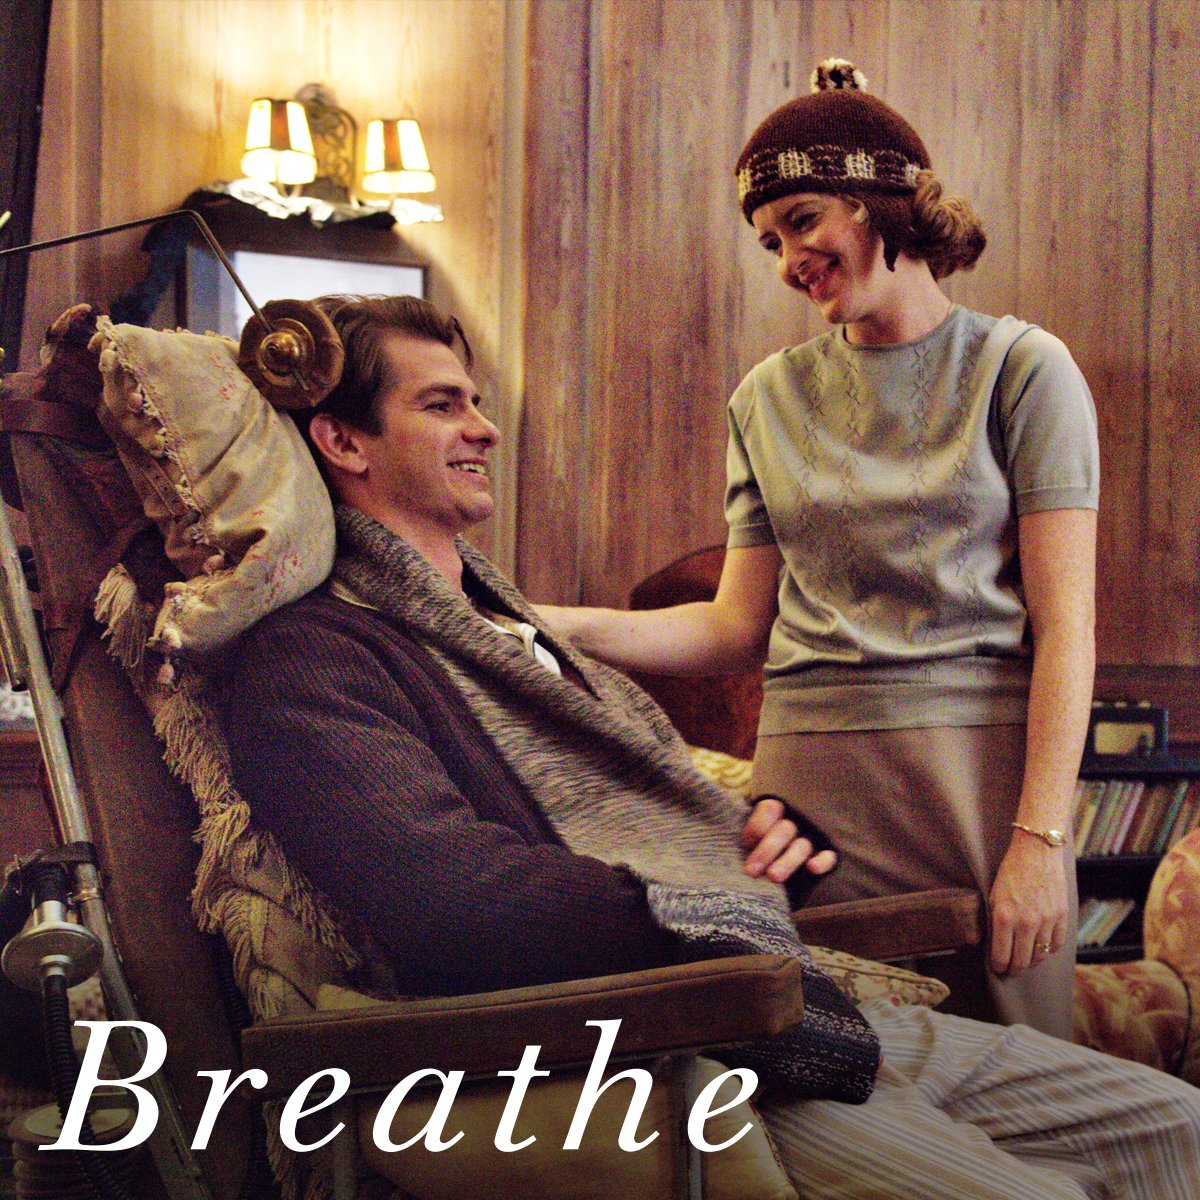 Image result for breathe movie